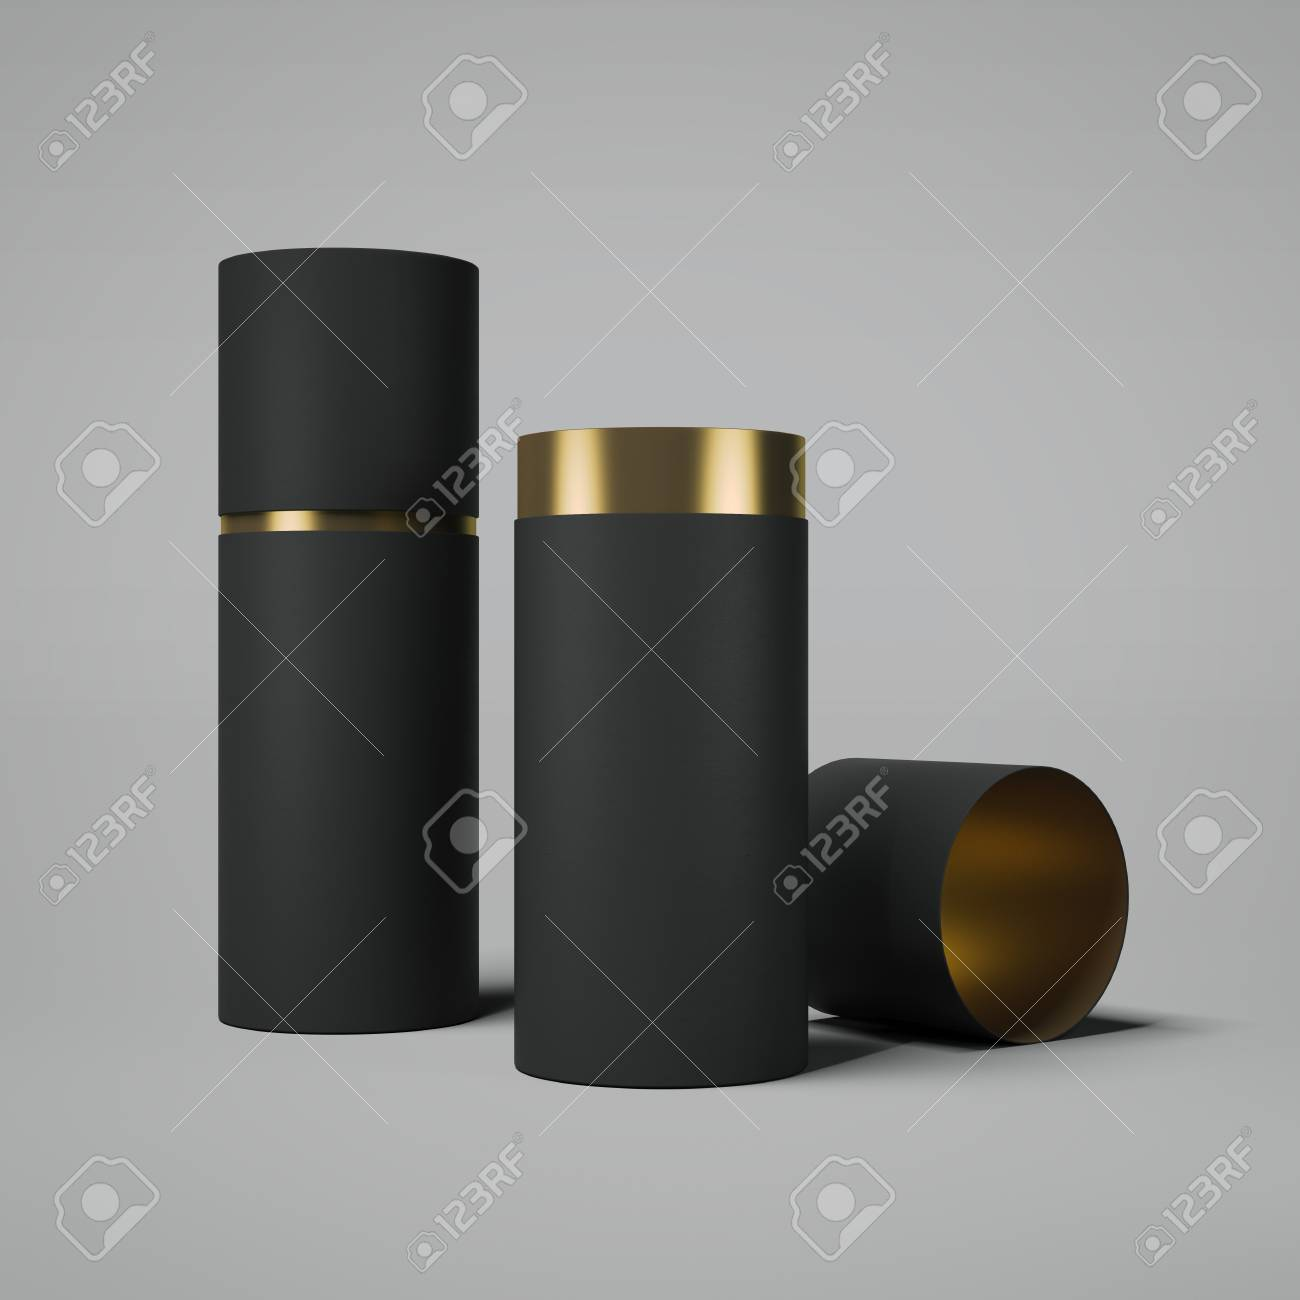 Black and gold tube opened. 3d rendering - 80523737